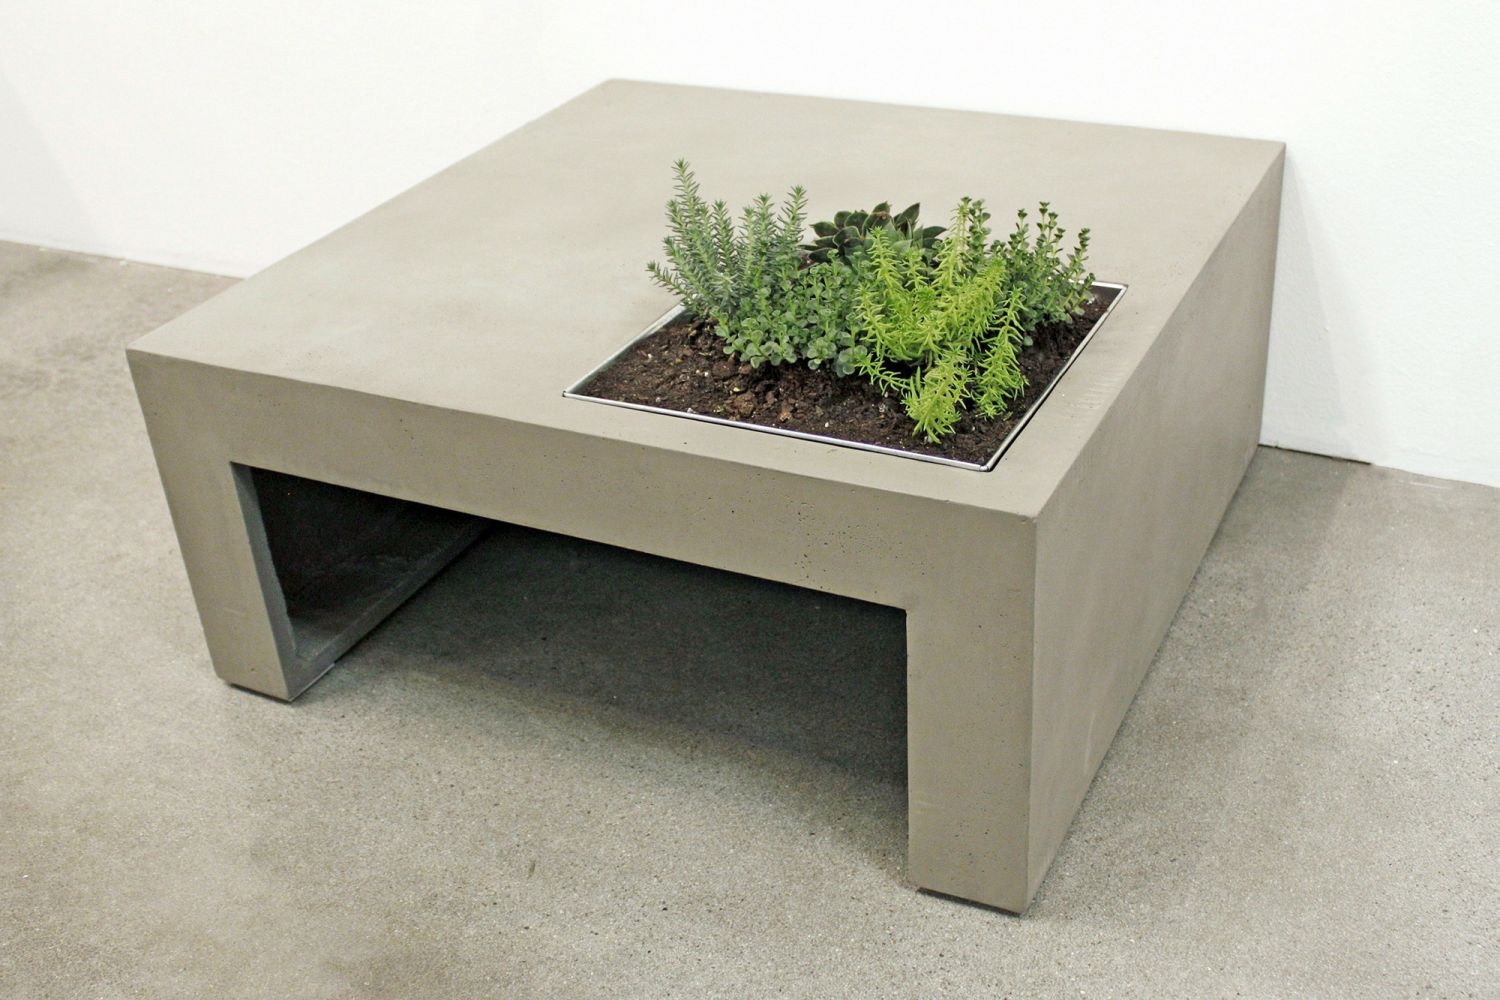 Beton cir meuble exterieur table de lit for Table exterieur beton